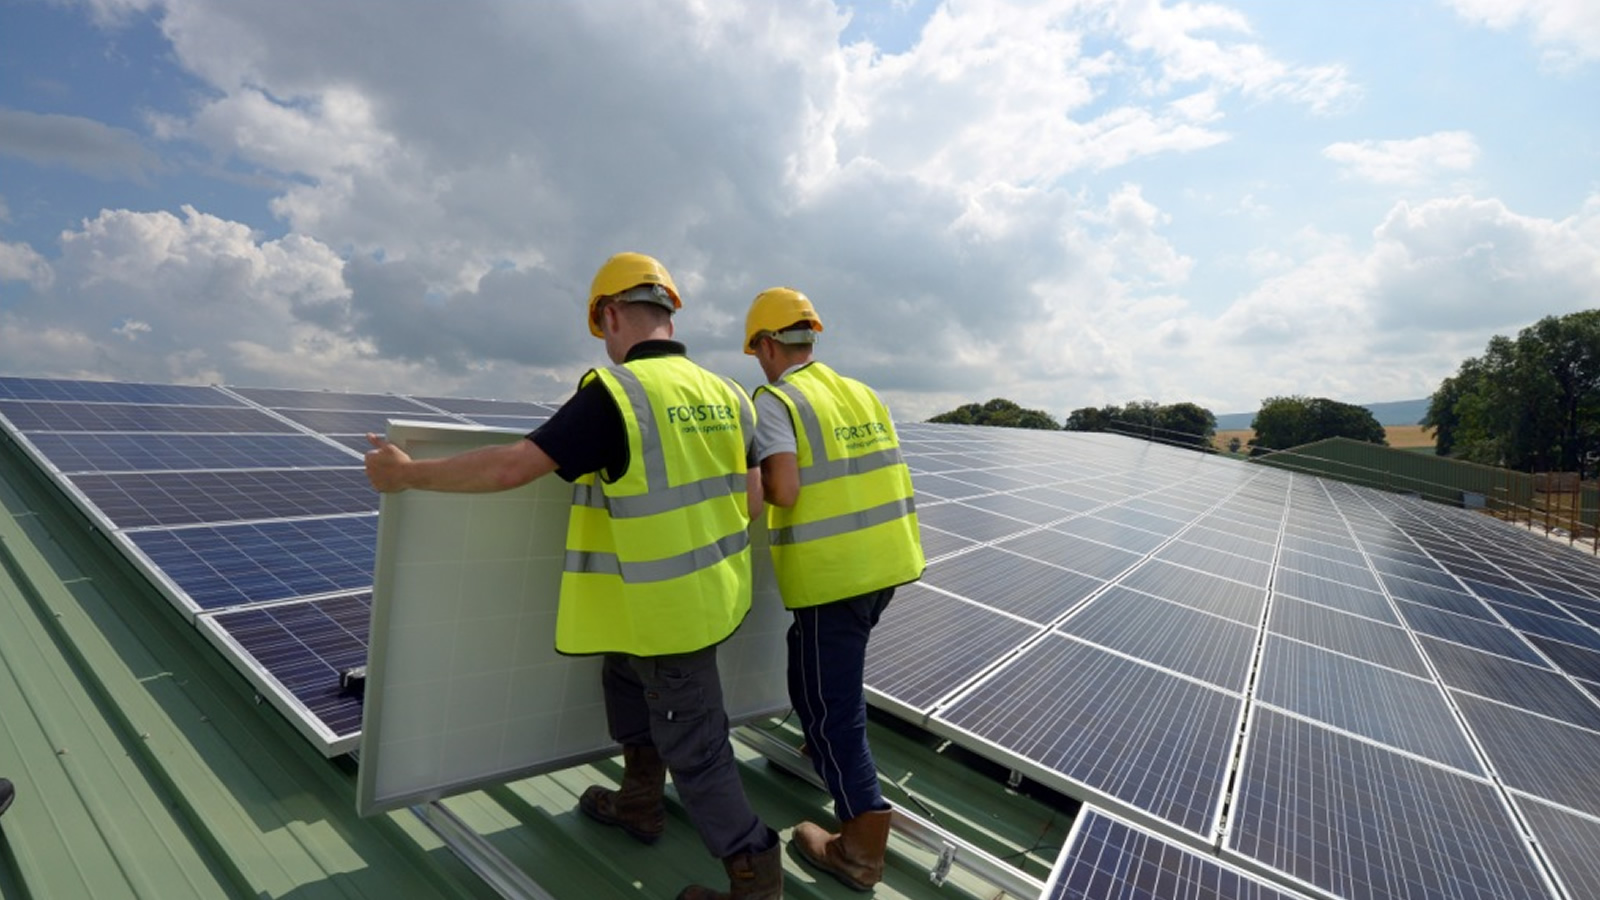 <h4>Stand Up For Solar</h4><h5>We're urging officials to reject attempts to make it harder for more Americans to go solar.</h5><em>Solar Trade Association CC BY-SA 2.0</em>